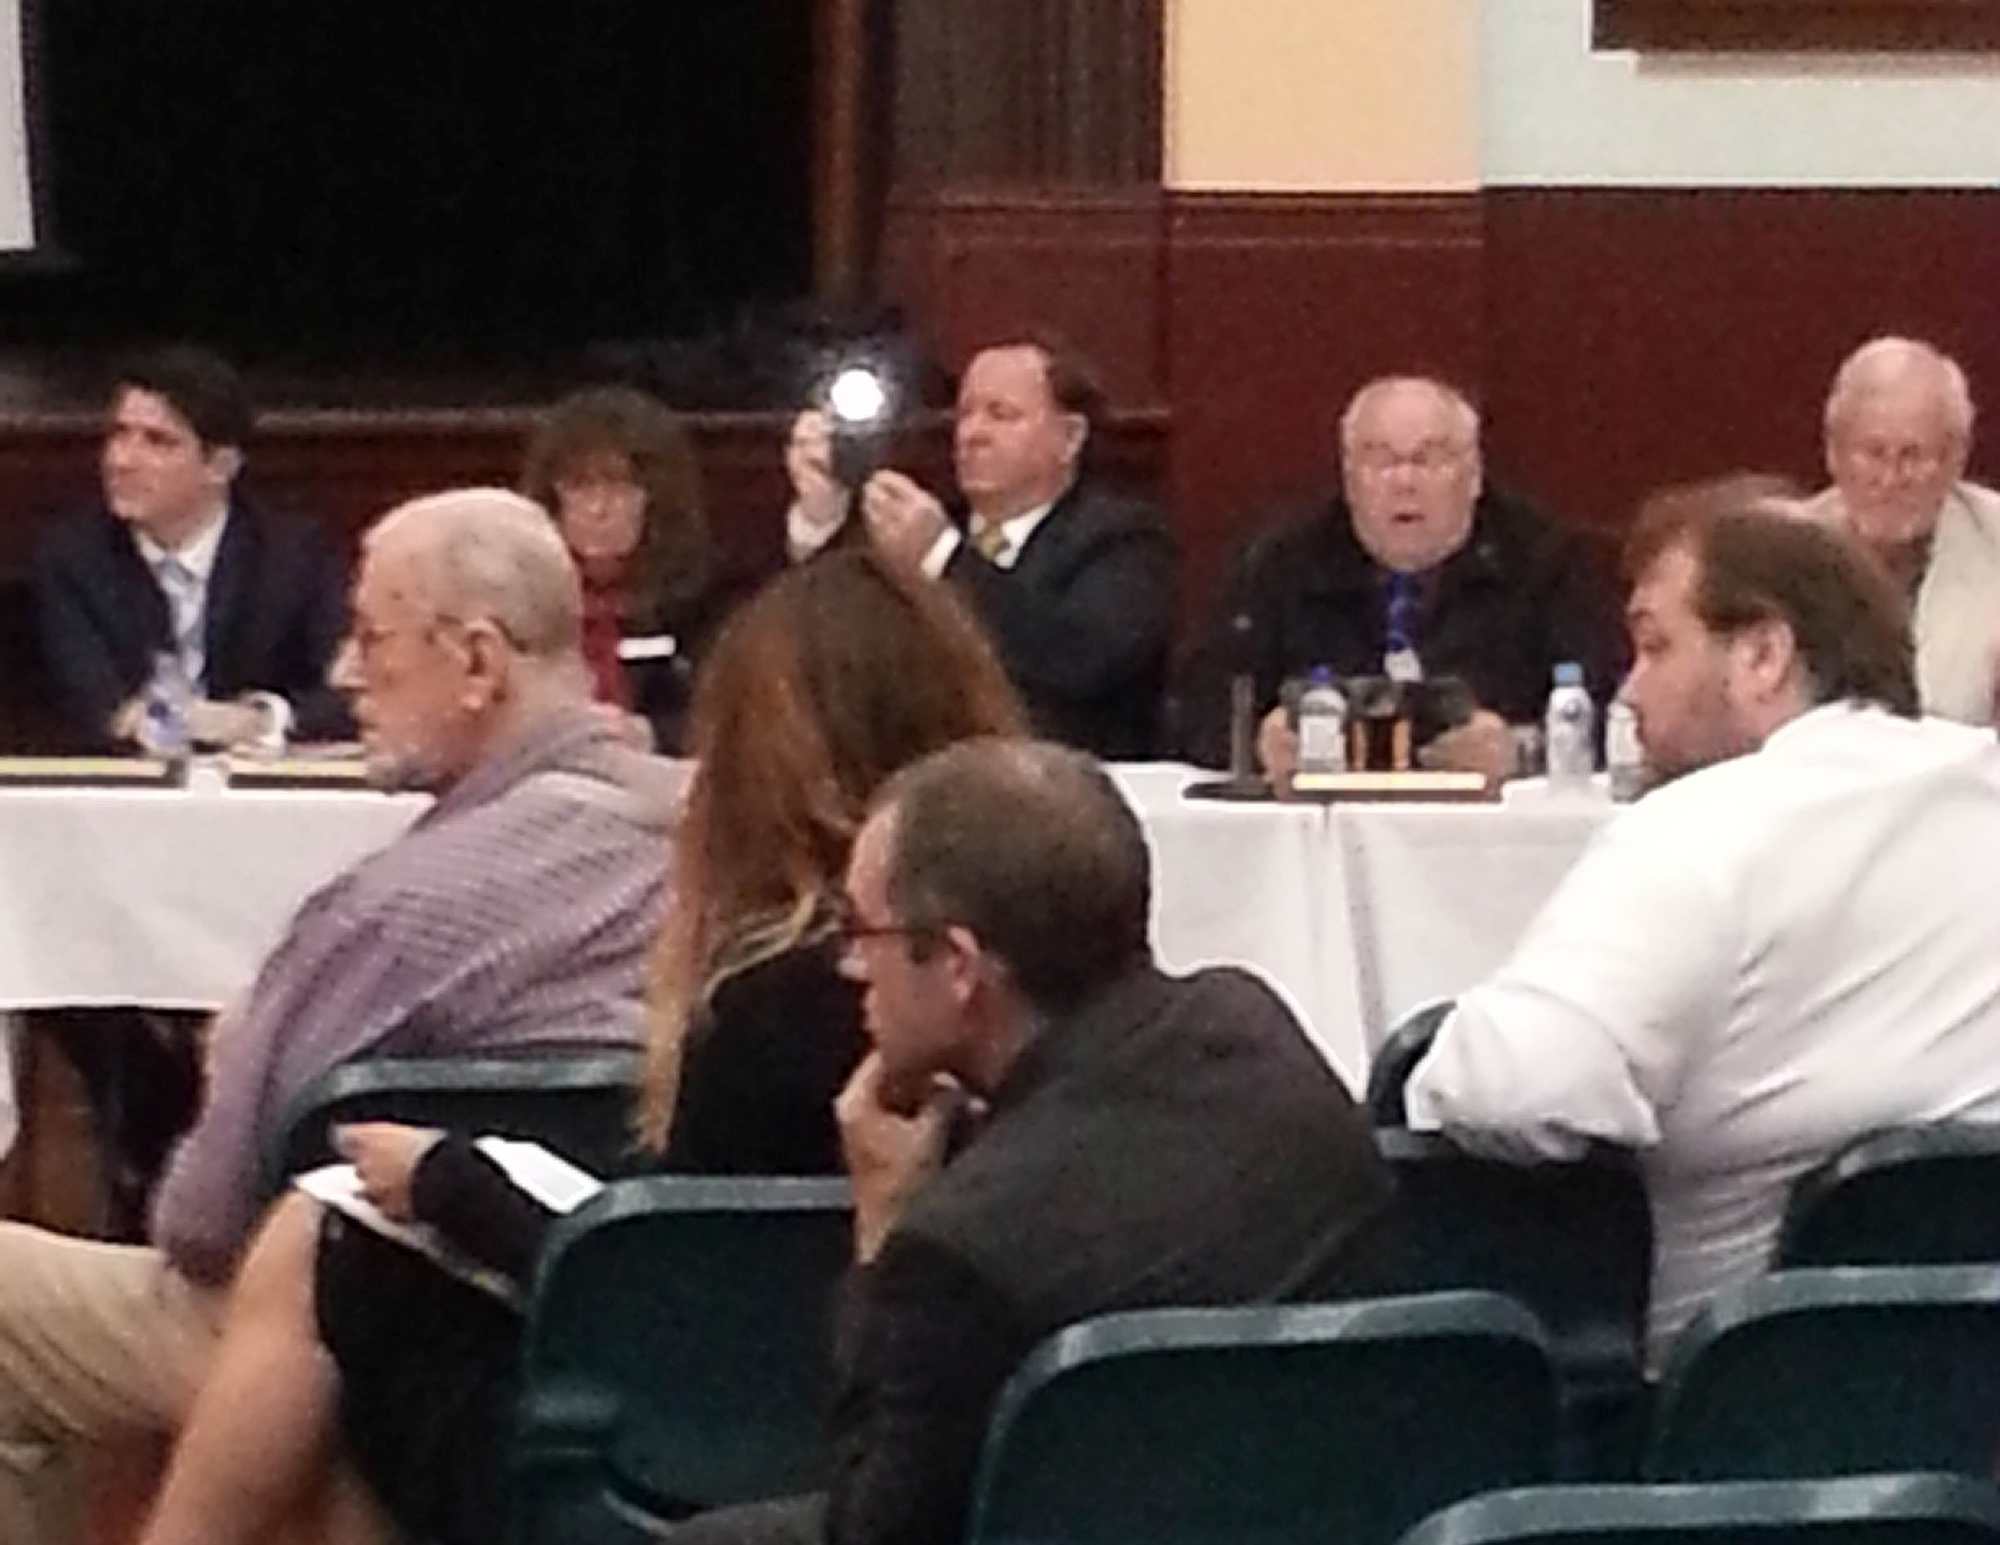 Councillor David Fardig takes a photo at last Monday's special electors meeting.